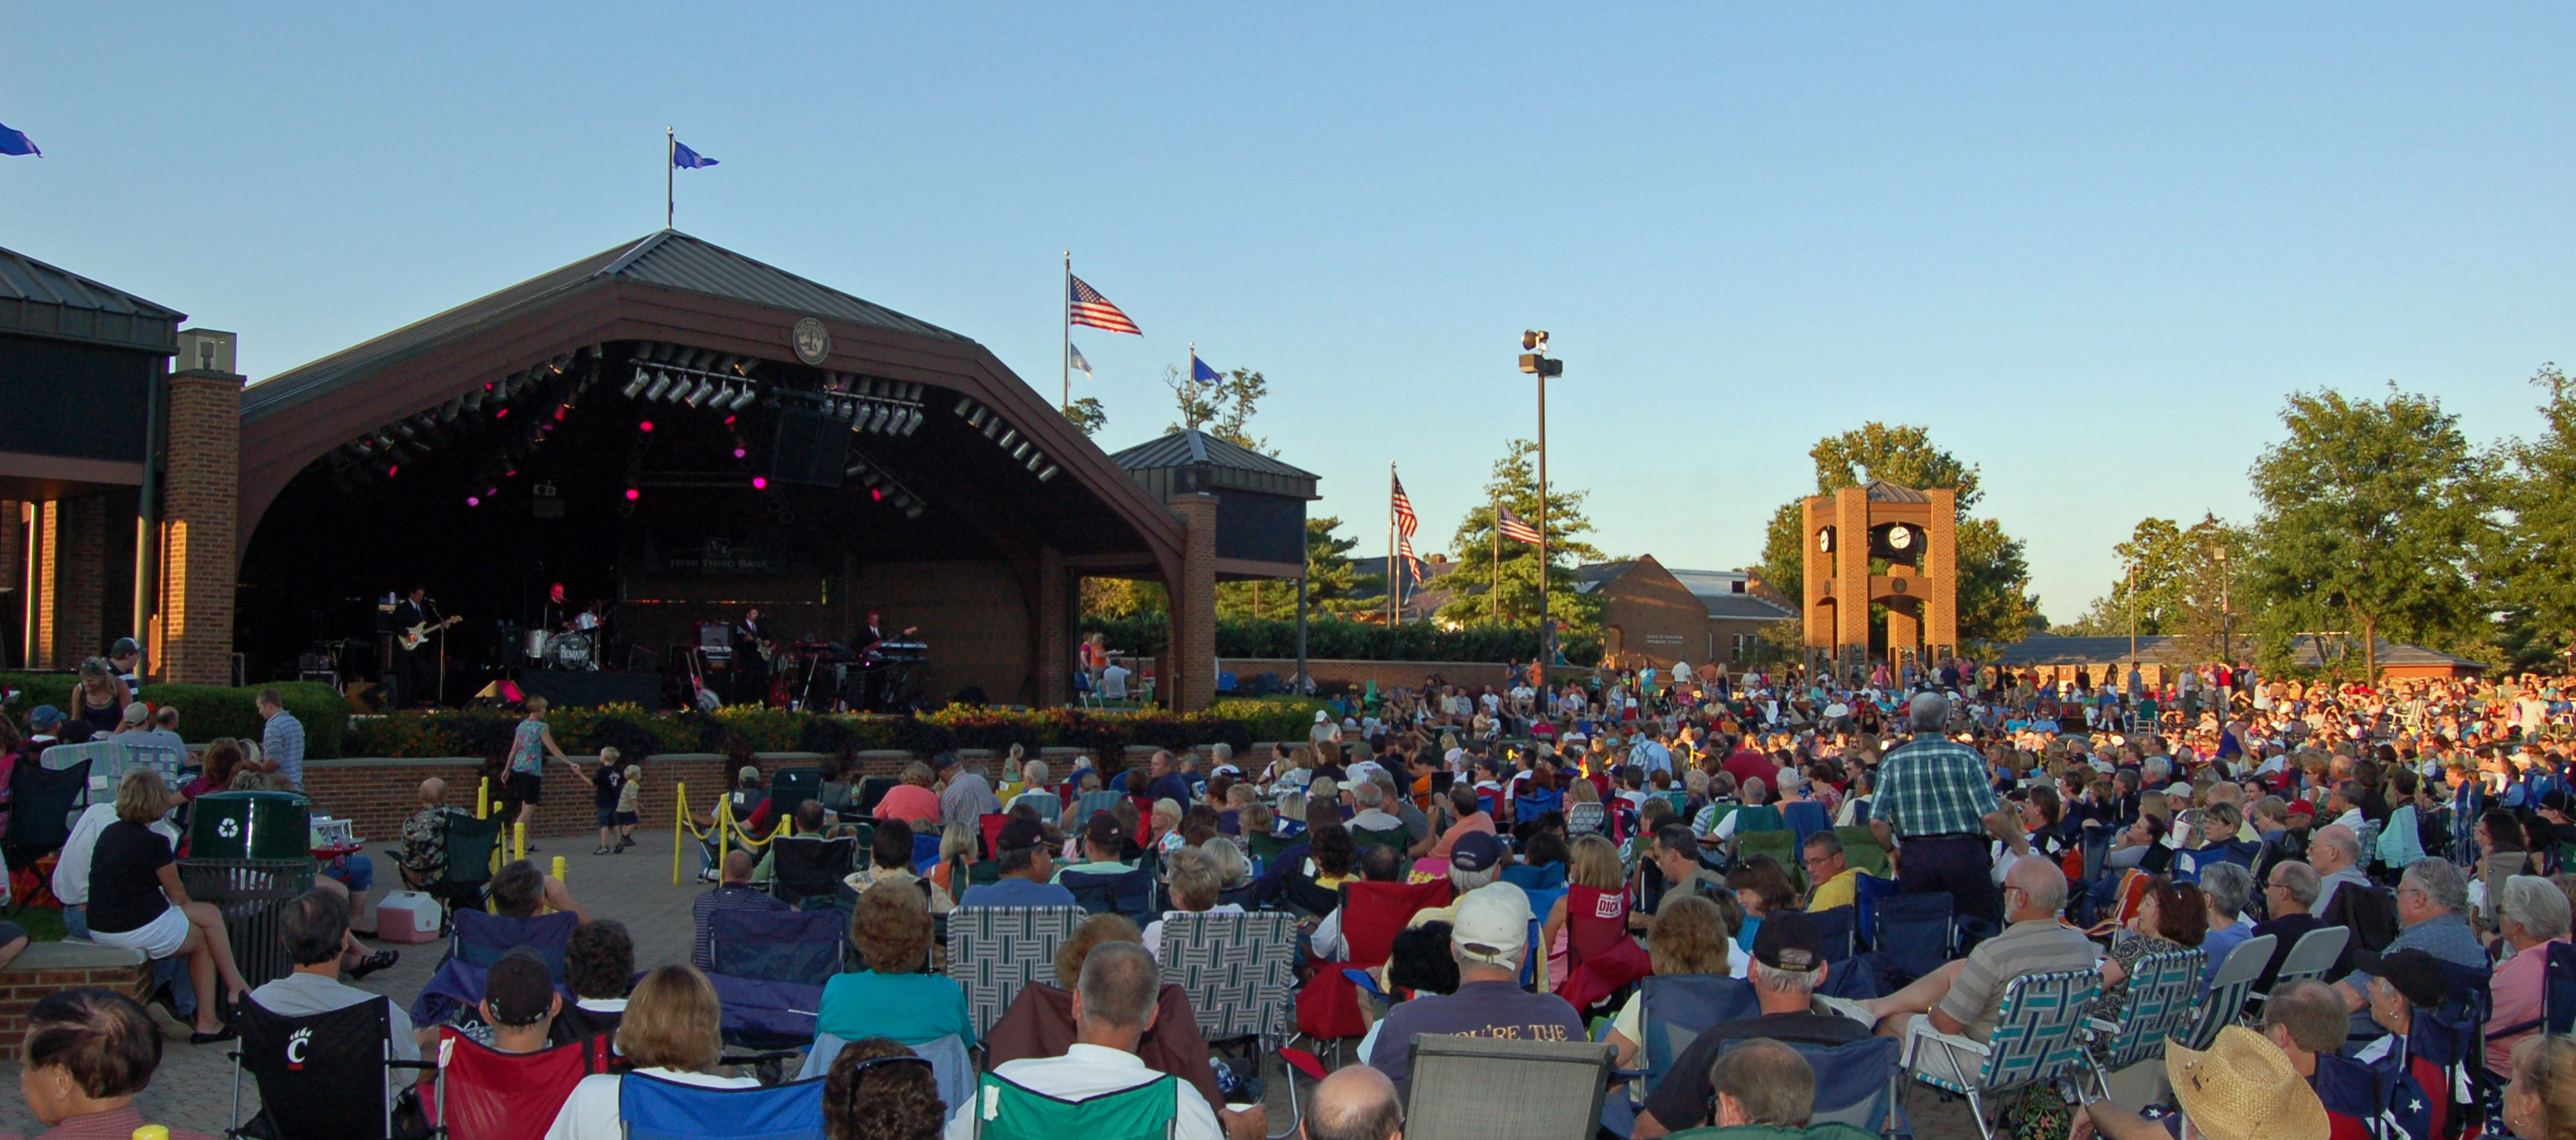 Friday Night Concert at Towne Square